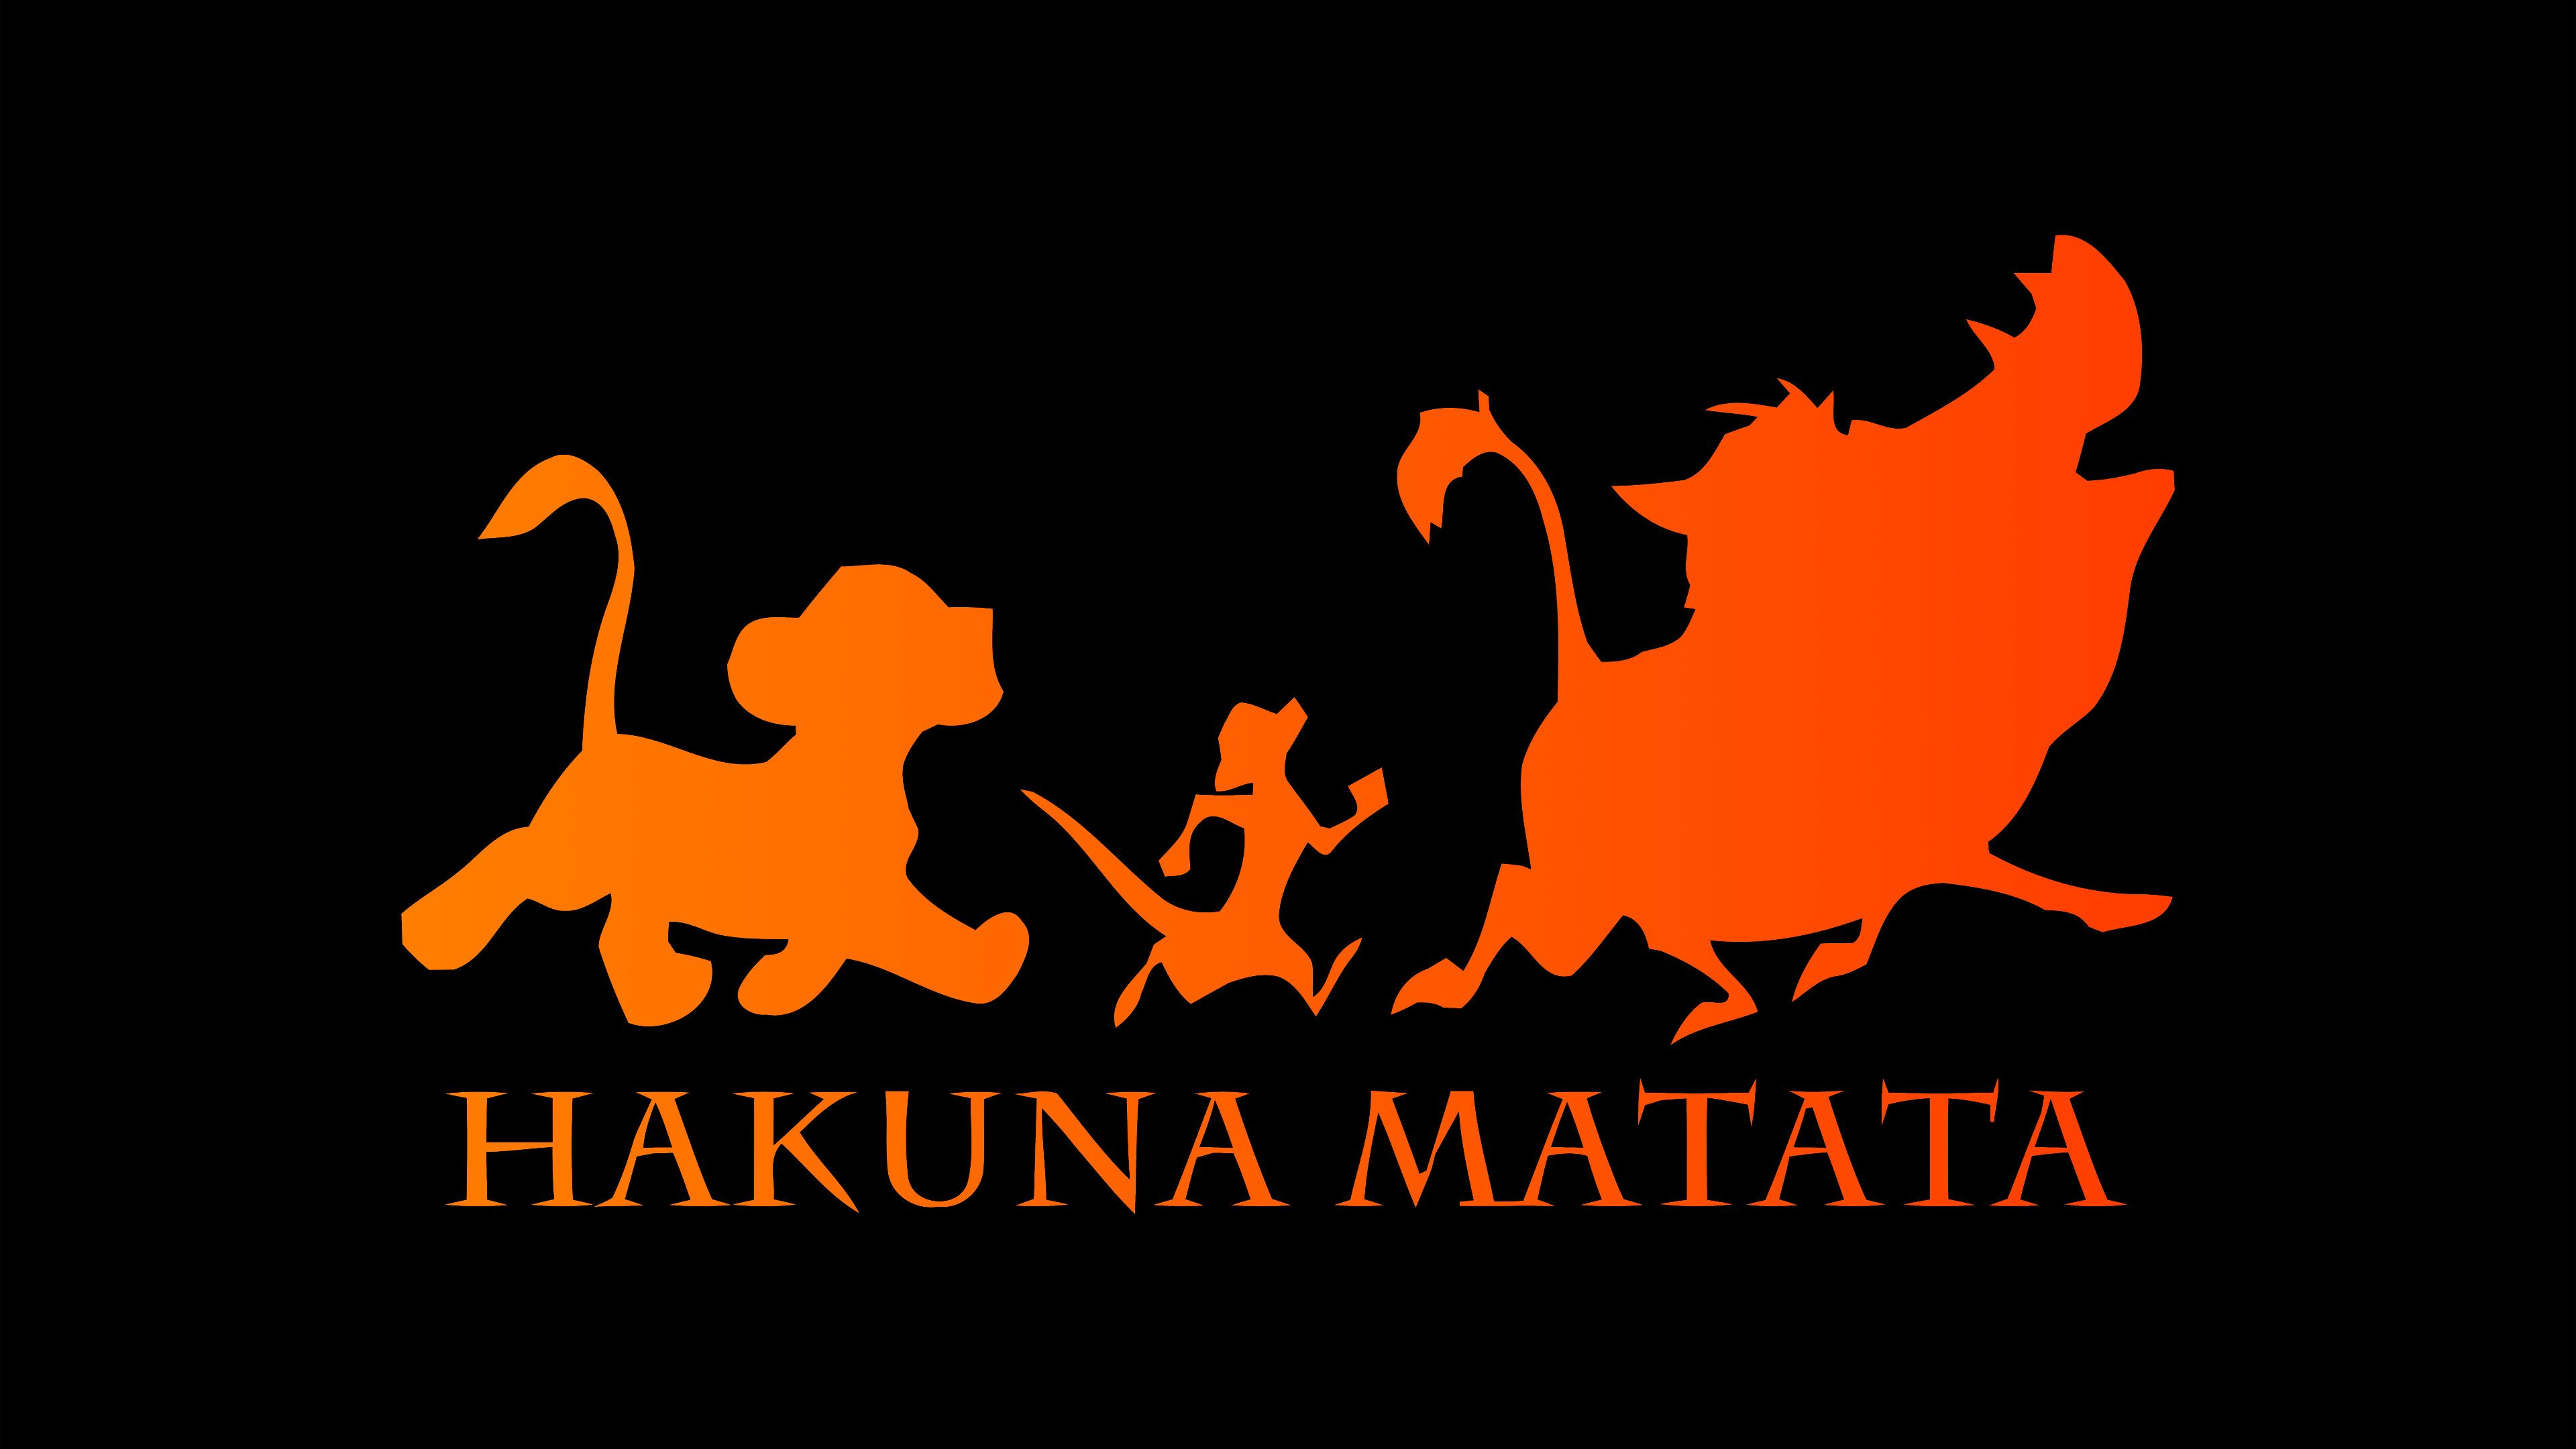 hakuna matata wallpapers - wallpaper cave